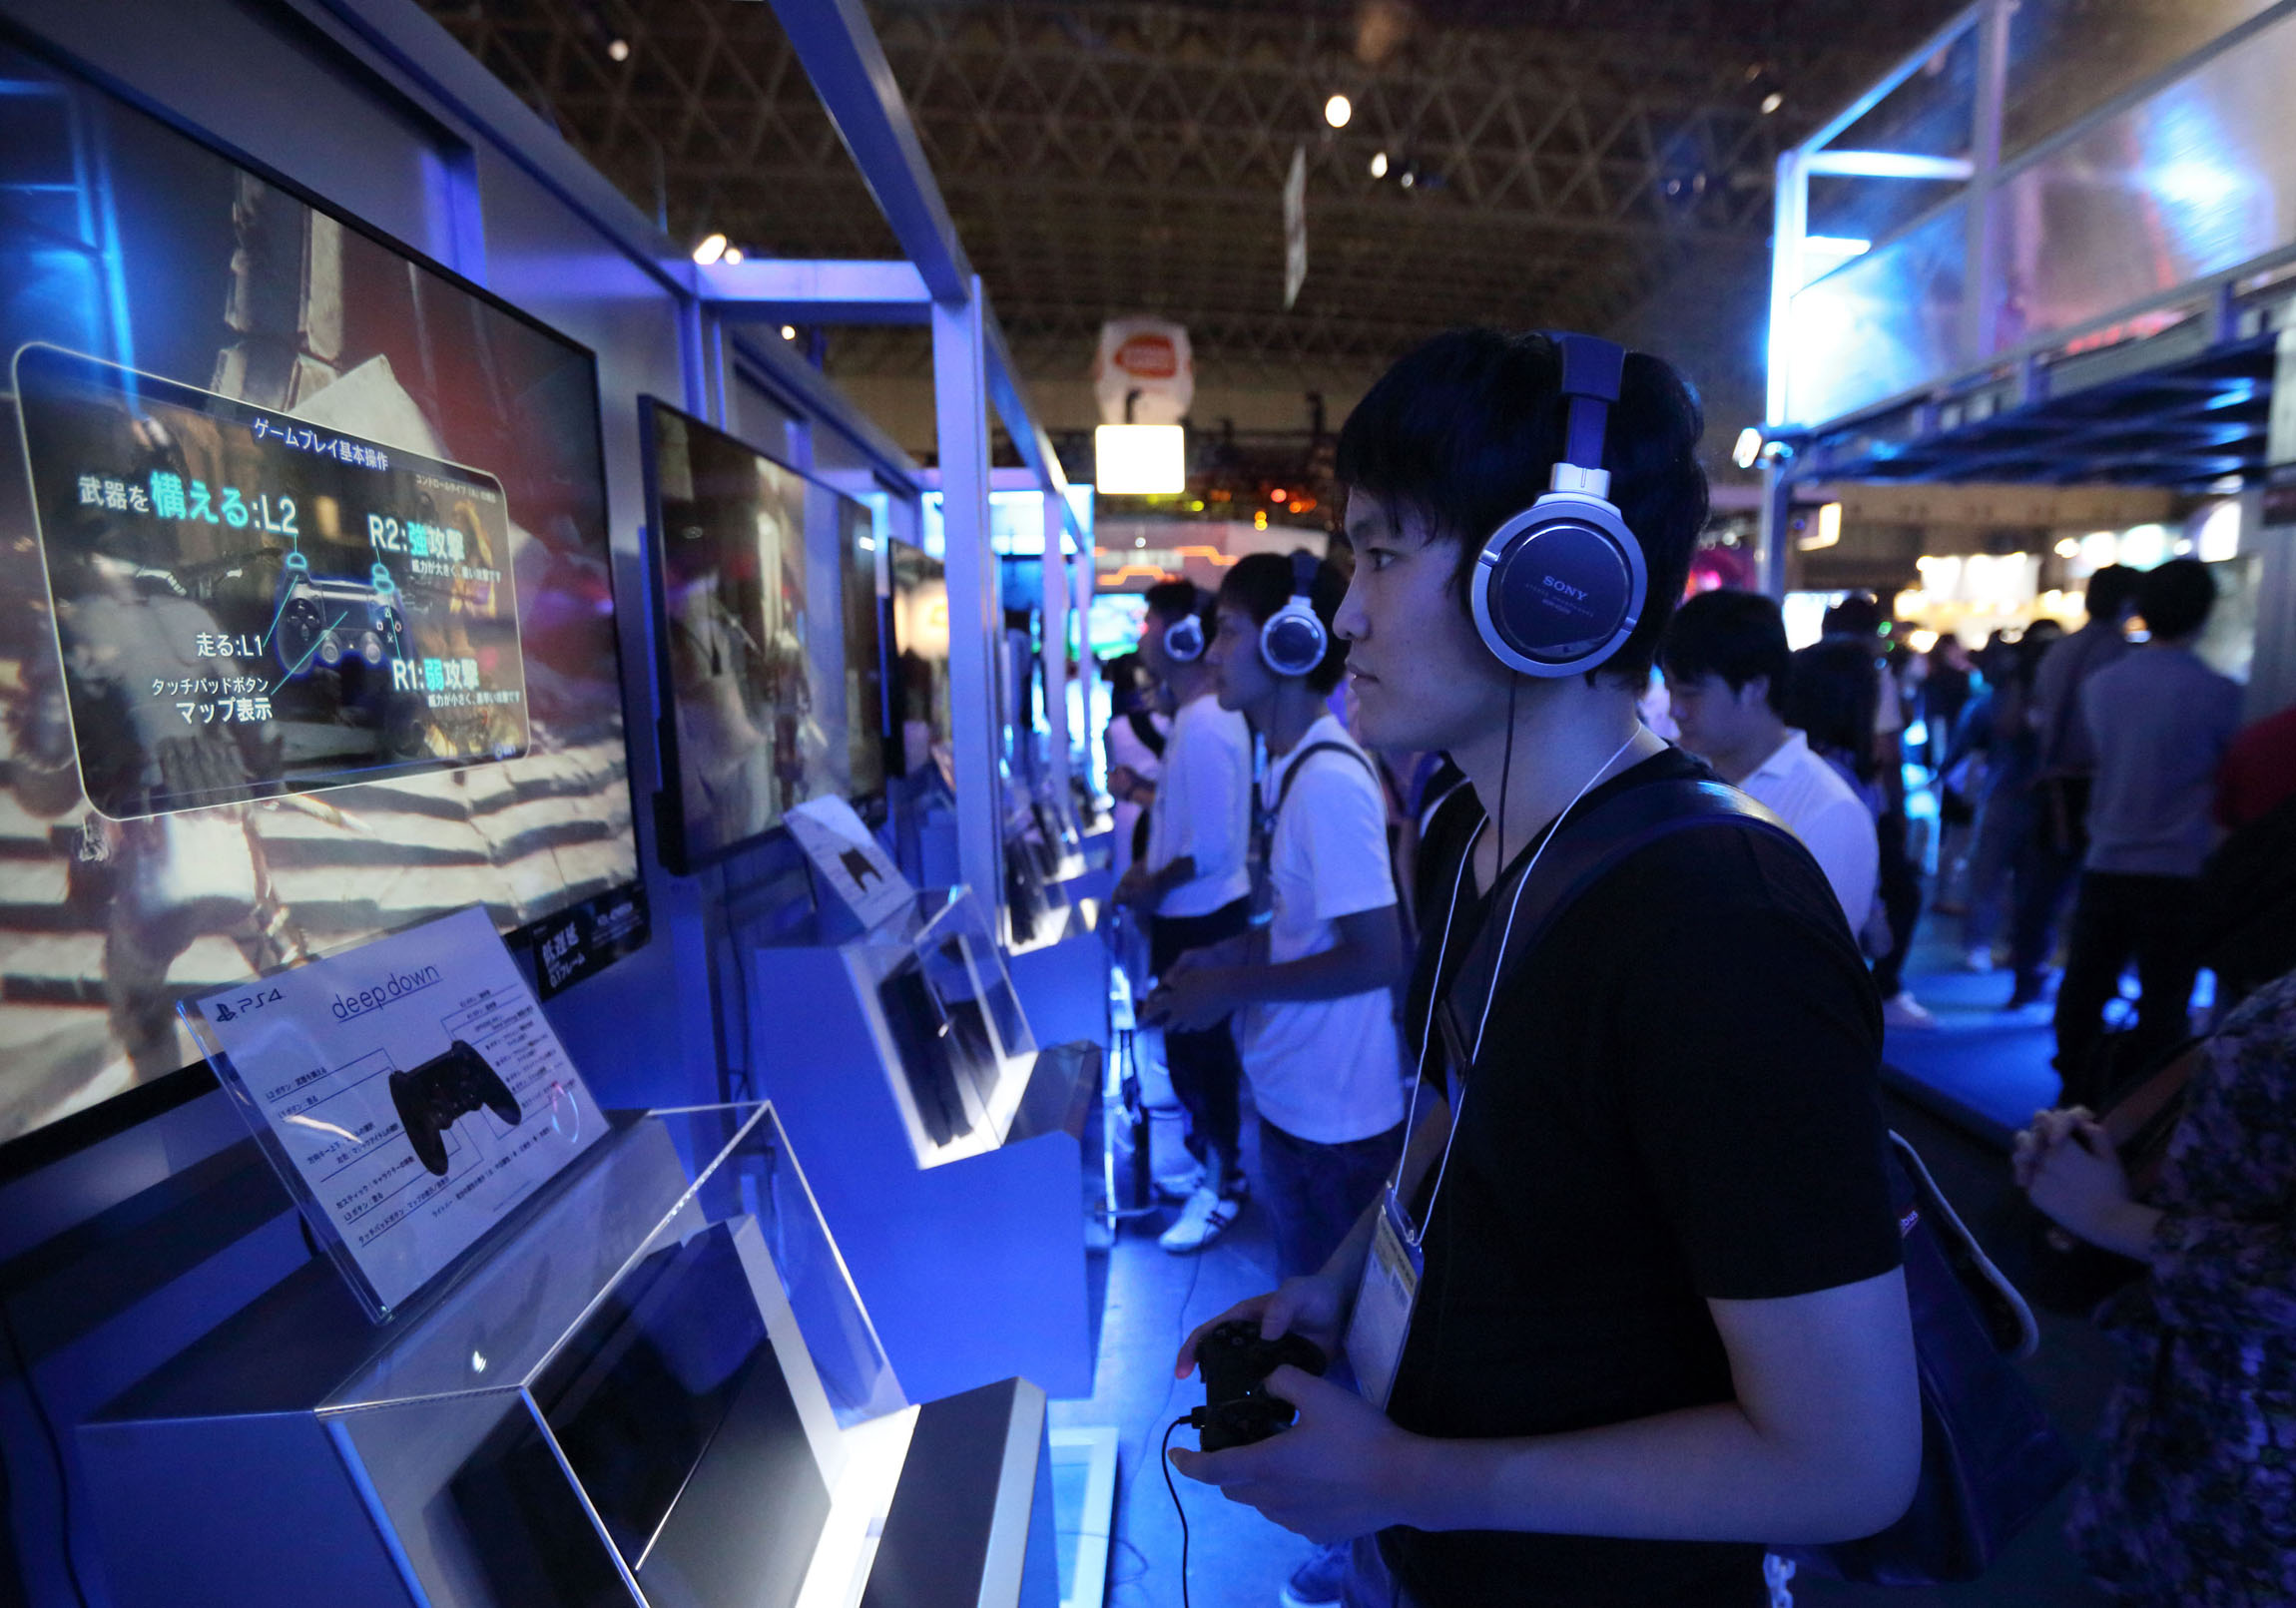 Winsome Game People Try Out Video Game Consoles At Tokyo Game Show Sony Expects Content To Up Sales Japan Times Sony Store Manhattan Nyc Sony Store Nyc Hours dpreview Sony Store Nyc